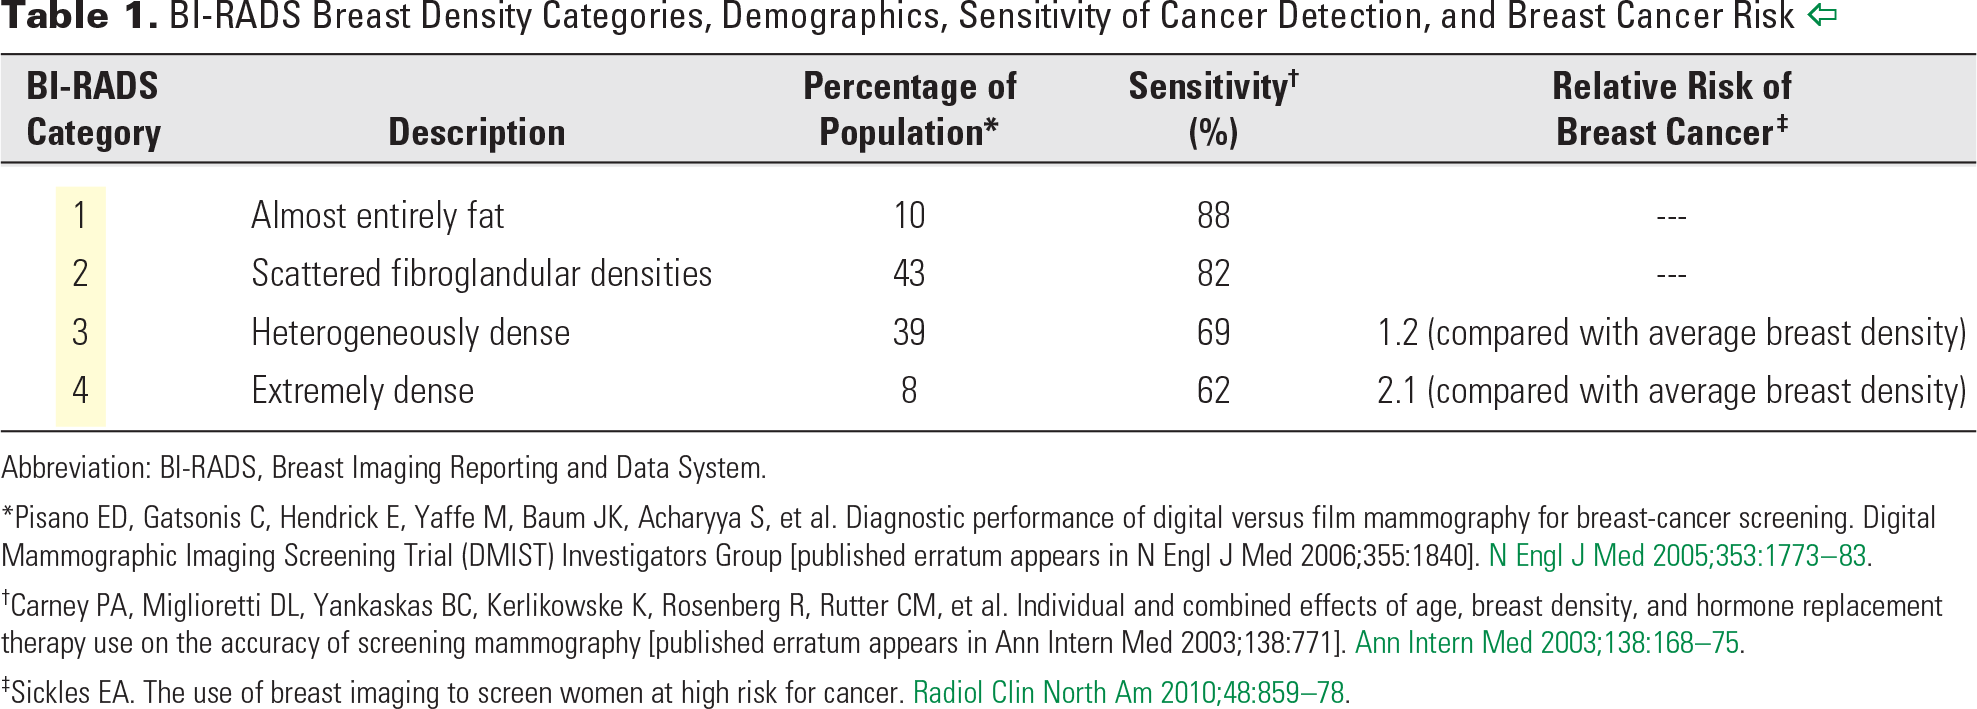 Table 1. BI-RADS Breast Density Categories, Demographics, Sensitivity of Cancer Detection, and Breast Cancer Risk